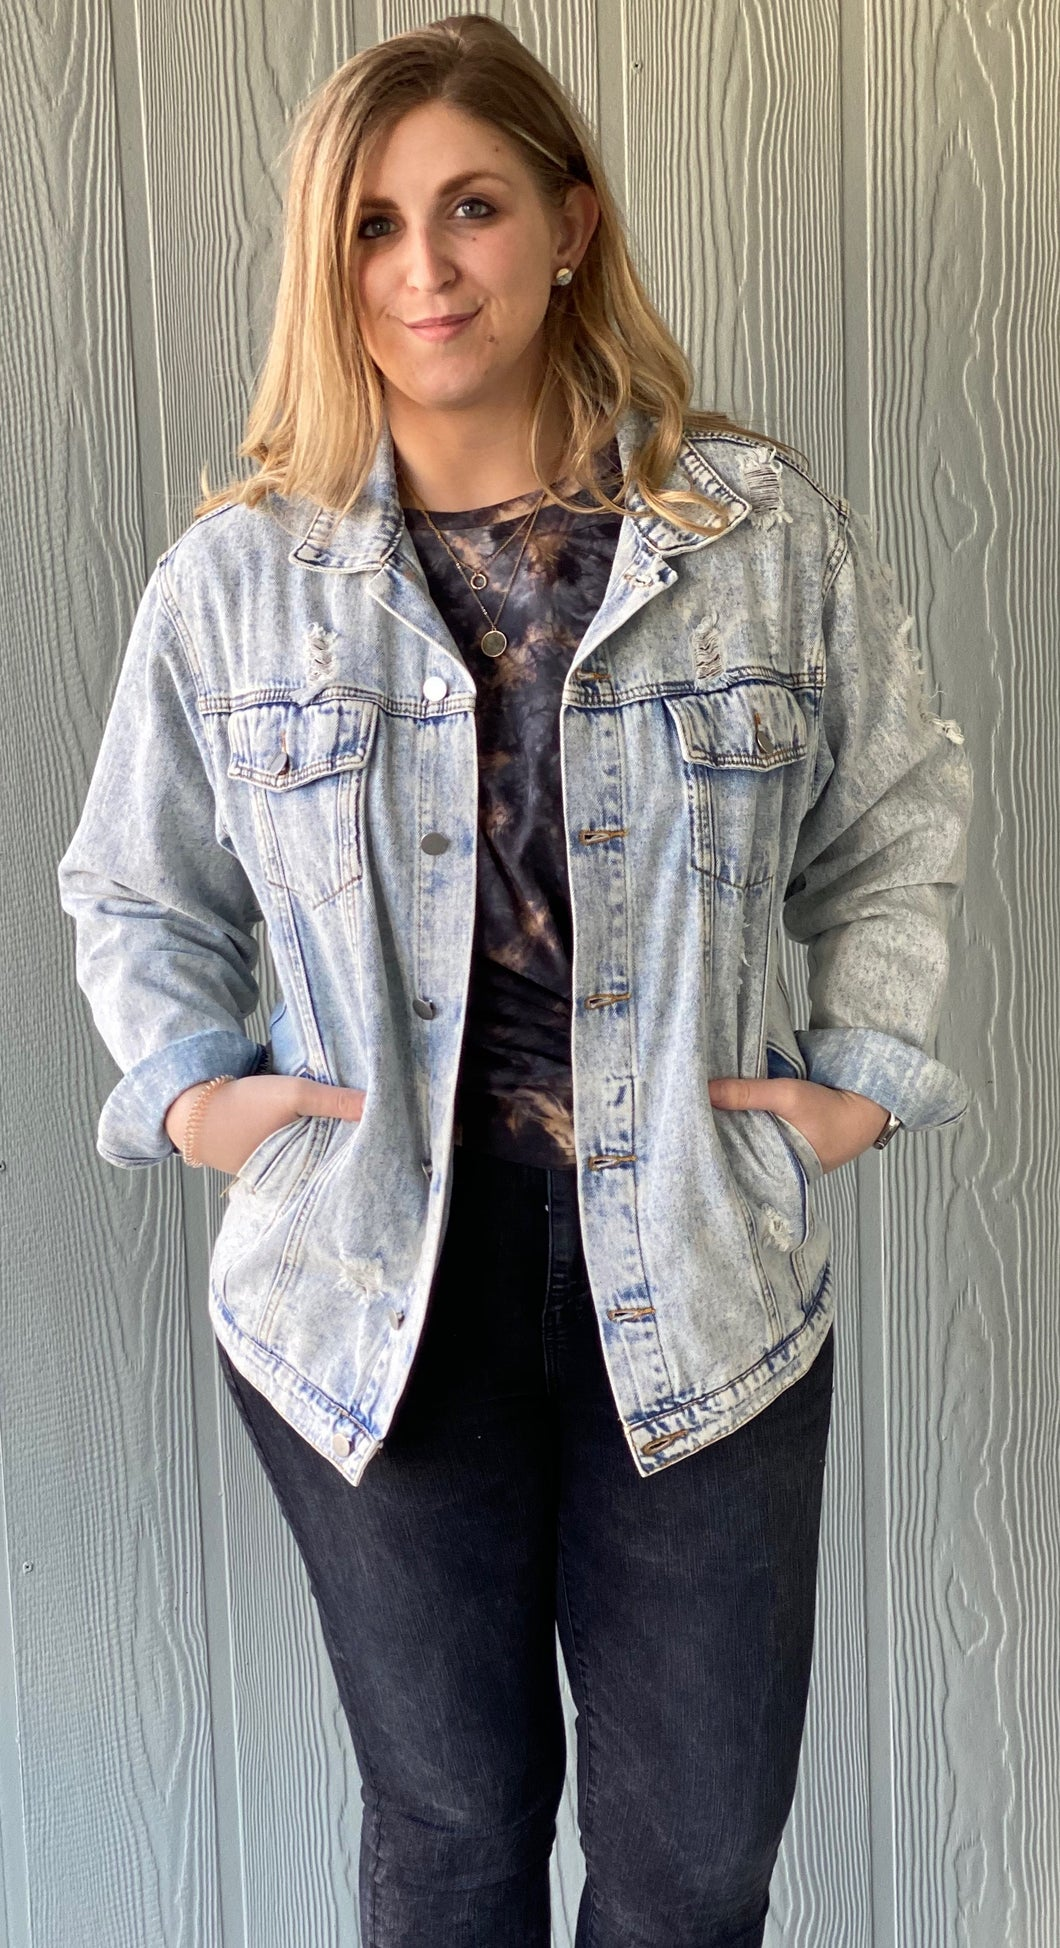 The Acid Wash Denim Jacket